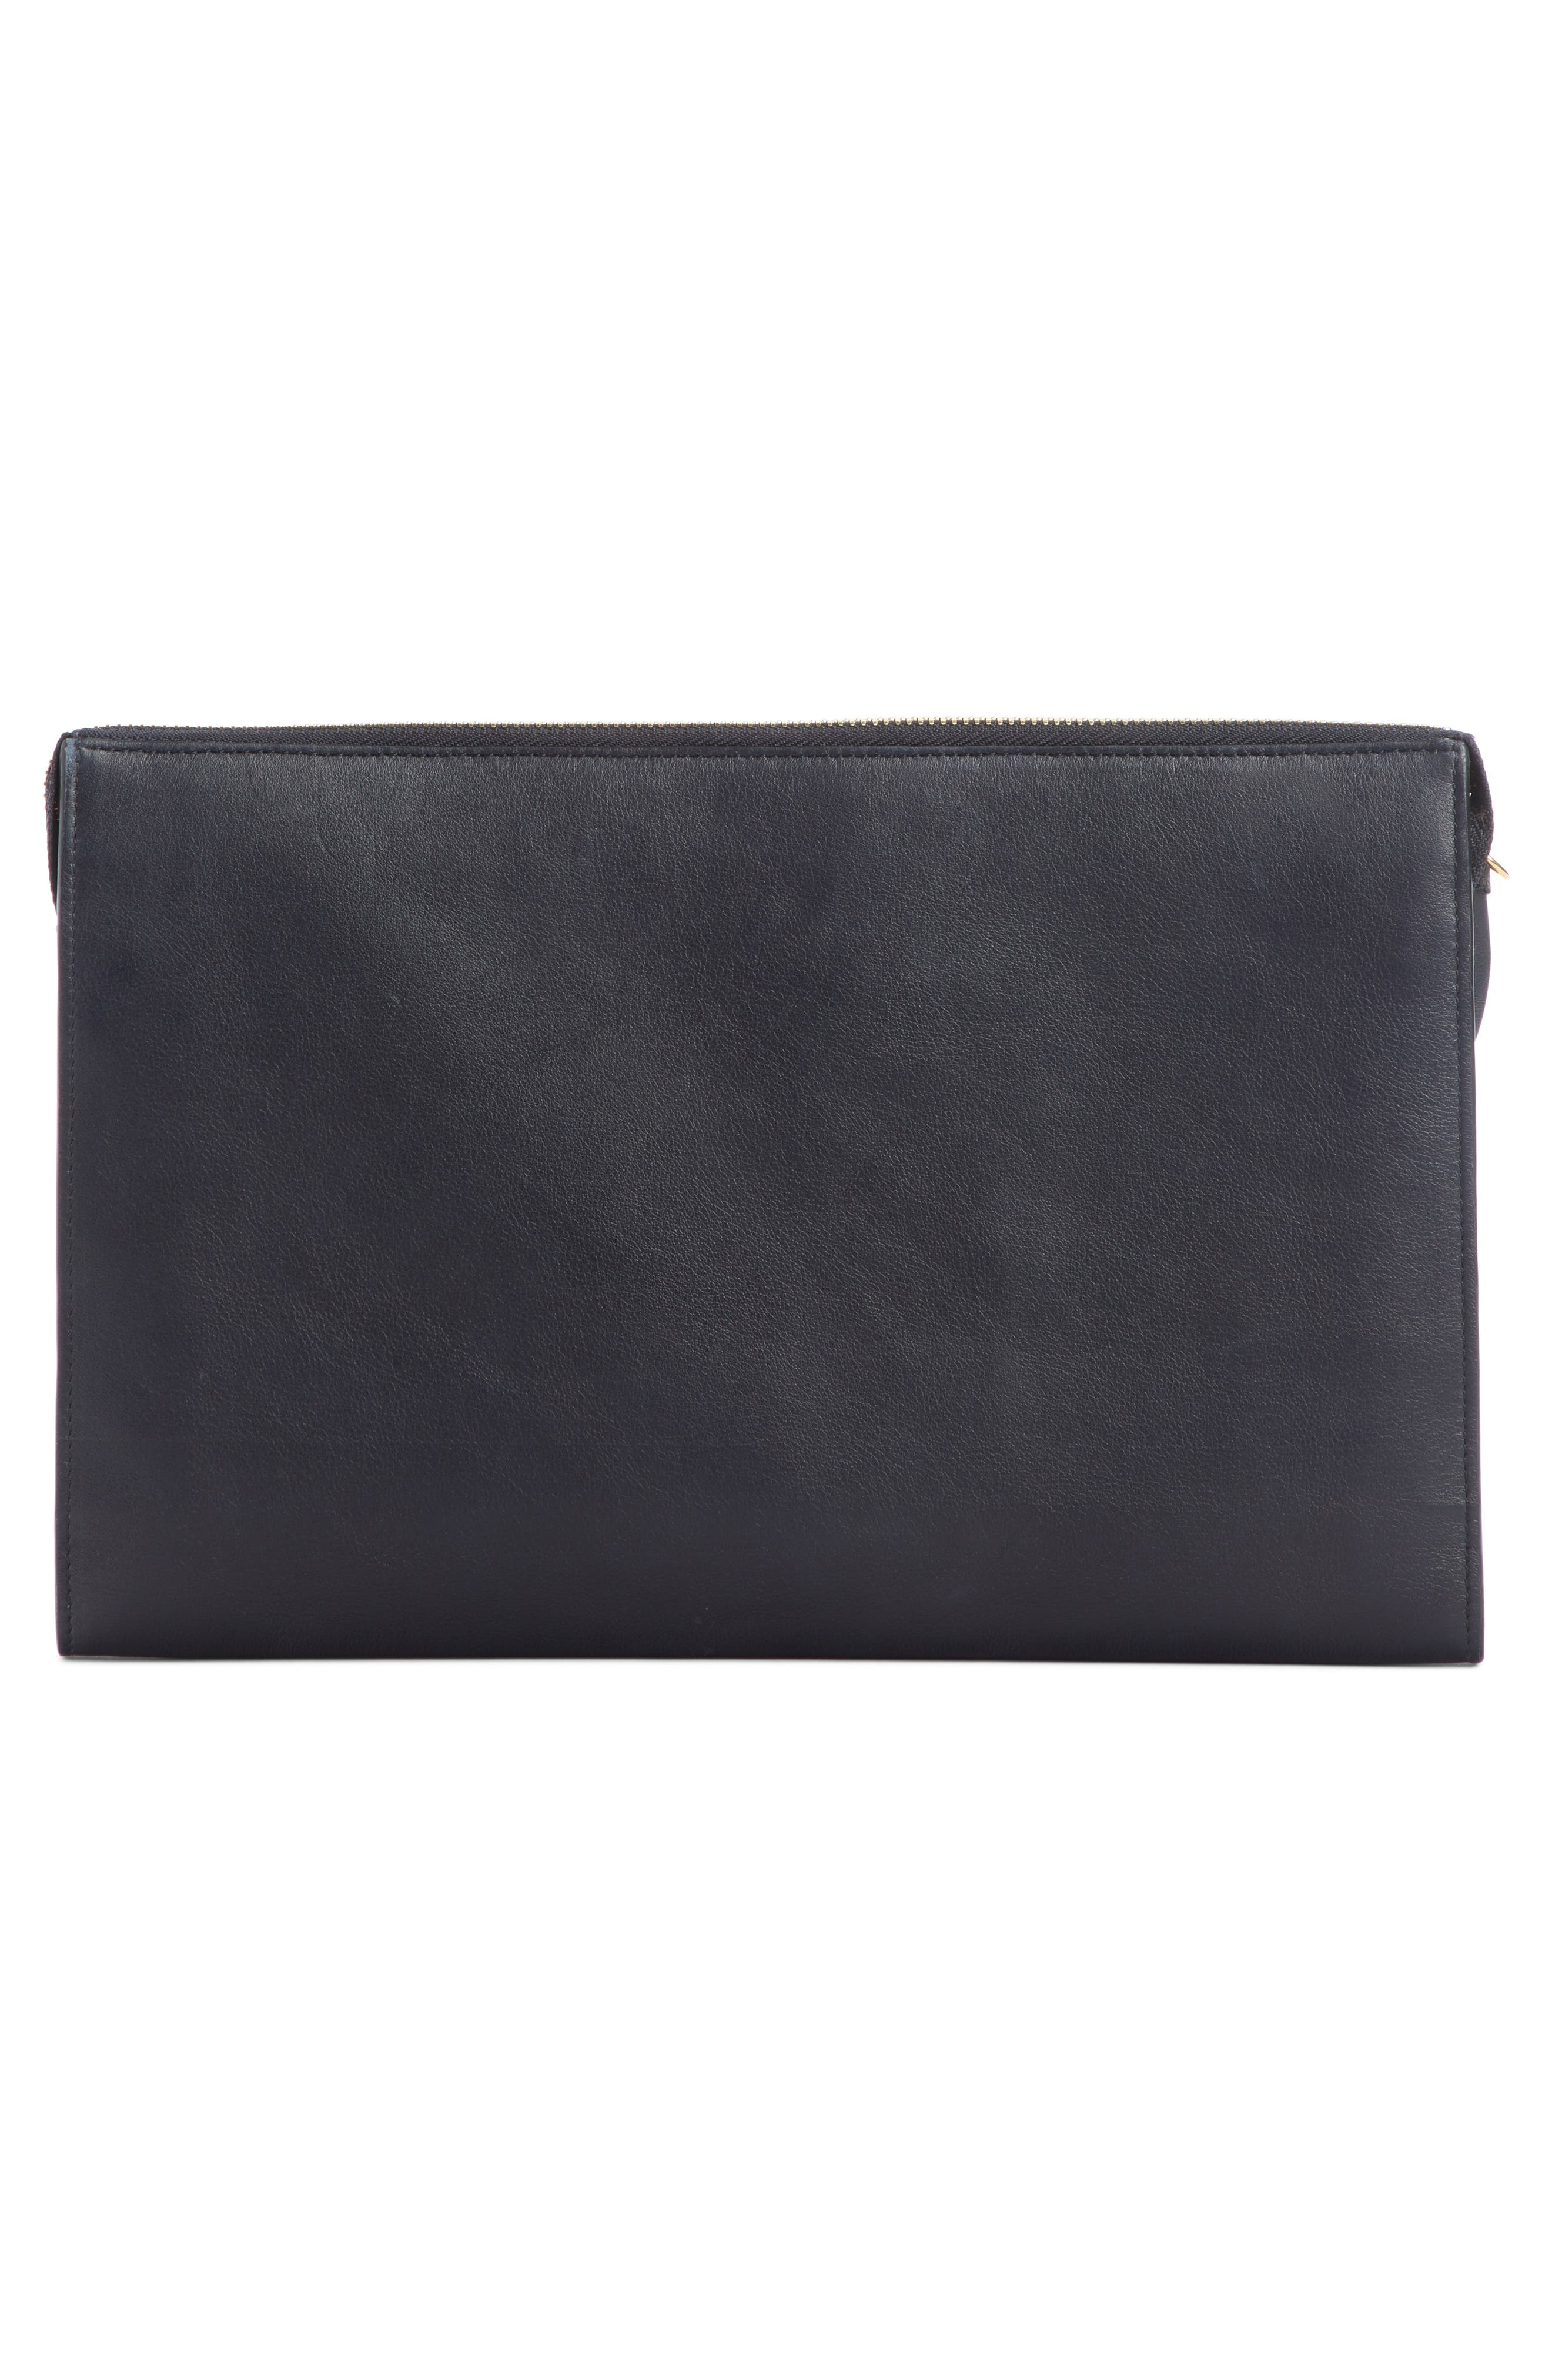 Vick Leather Zip Pouch,                             Alternate thumbnail 2, color,                             FULL BLUE